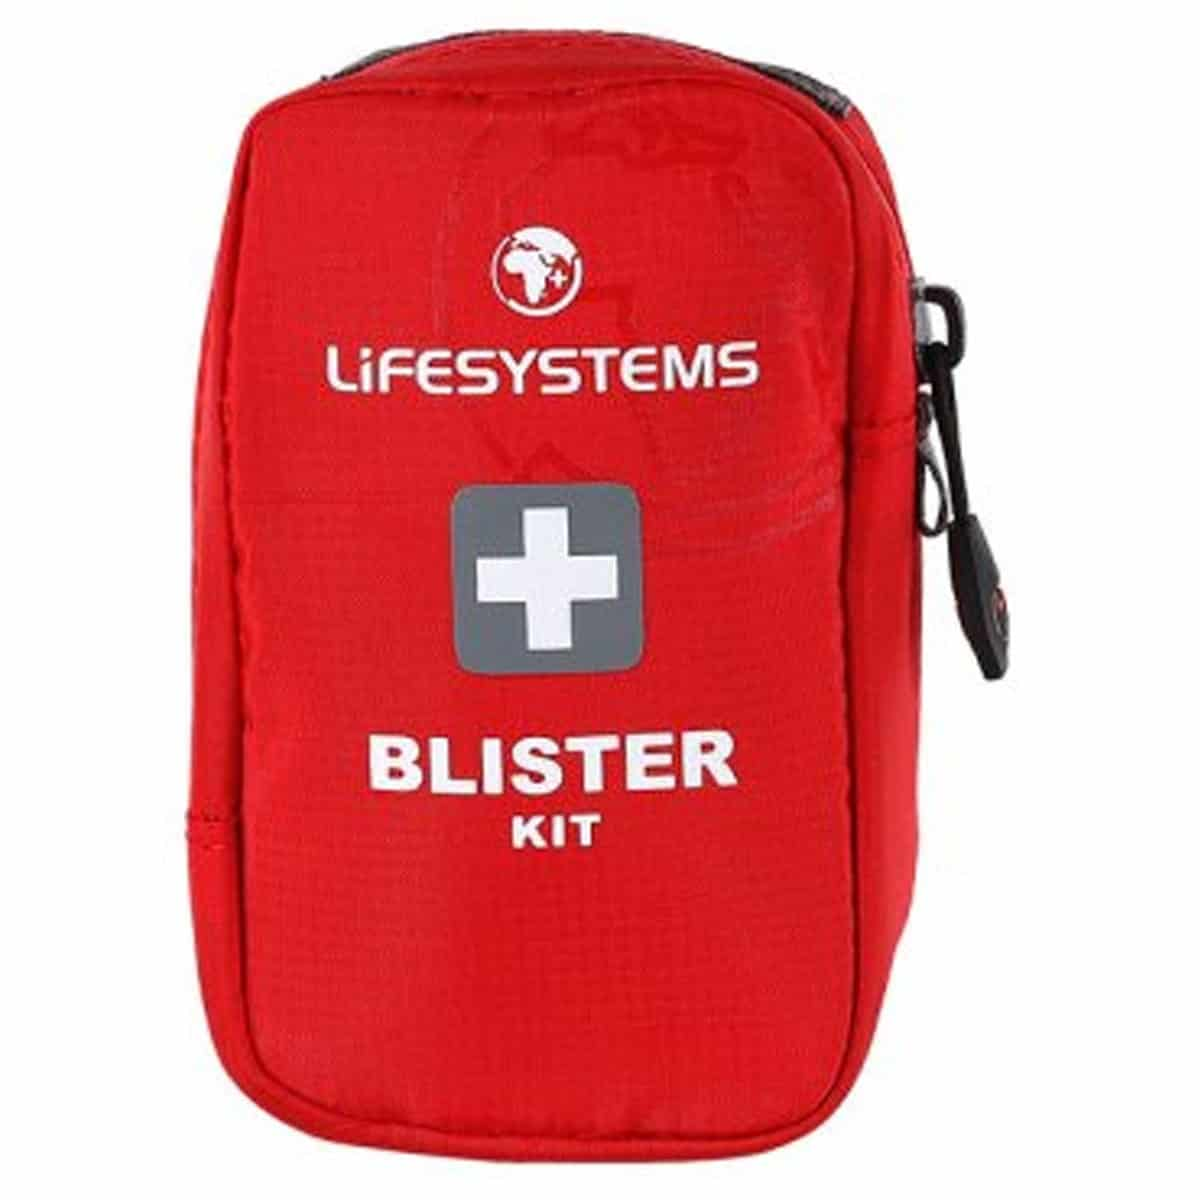 Lifesystems Blister Kit til vabler